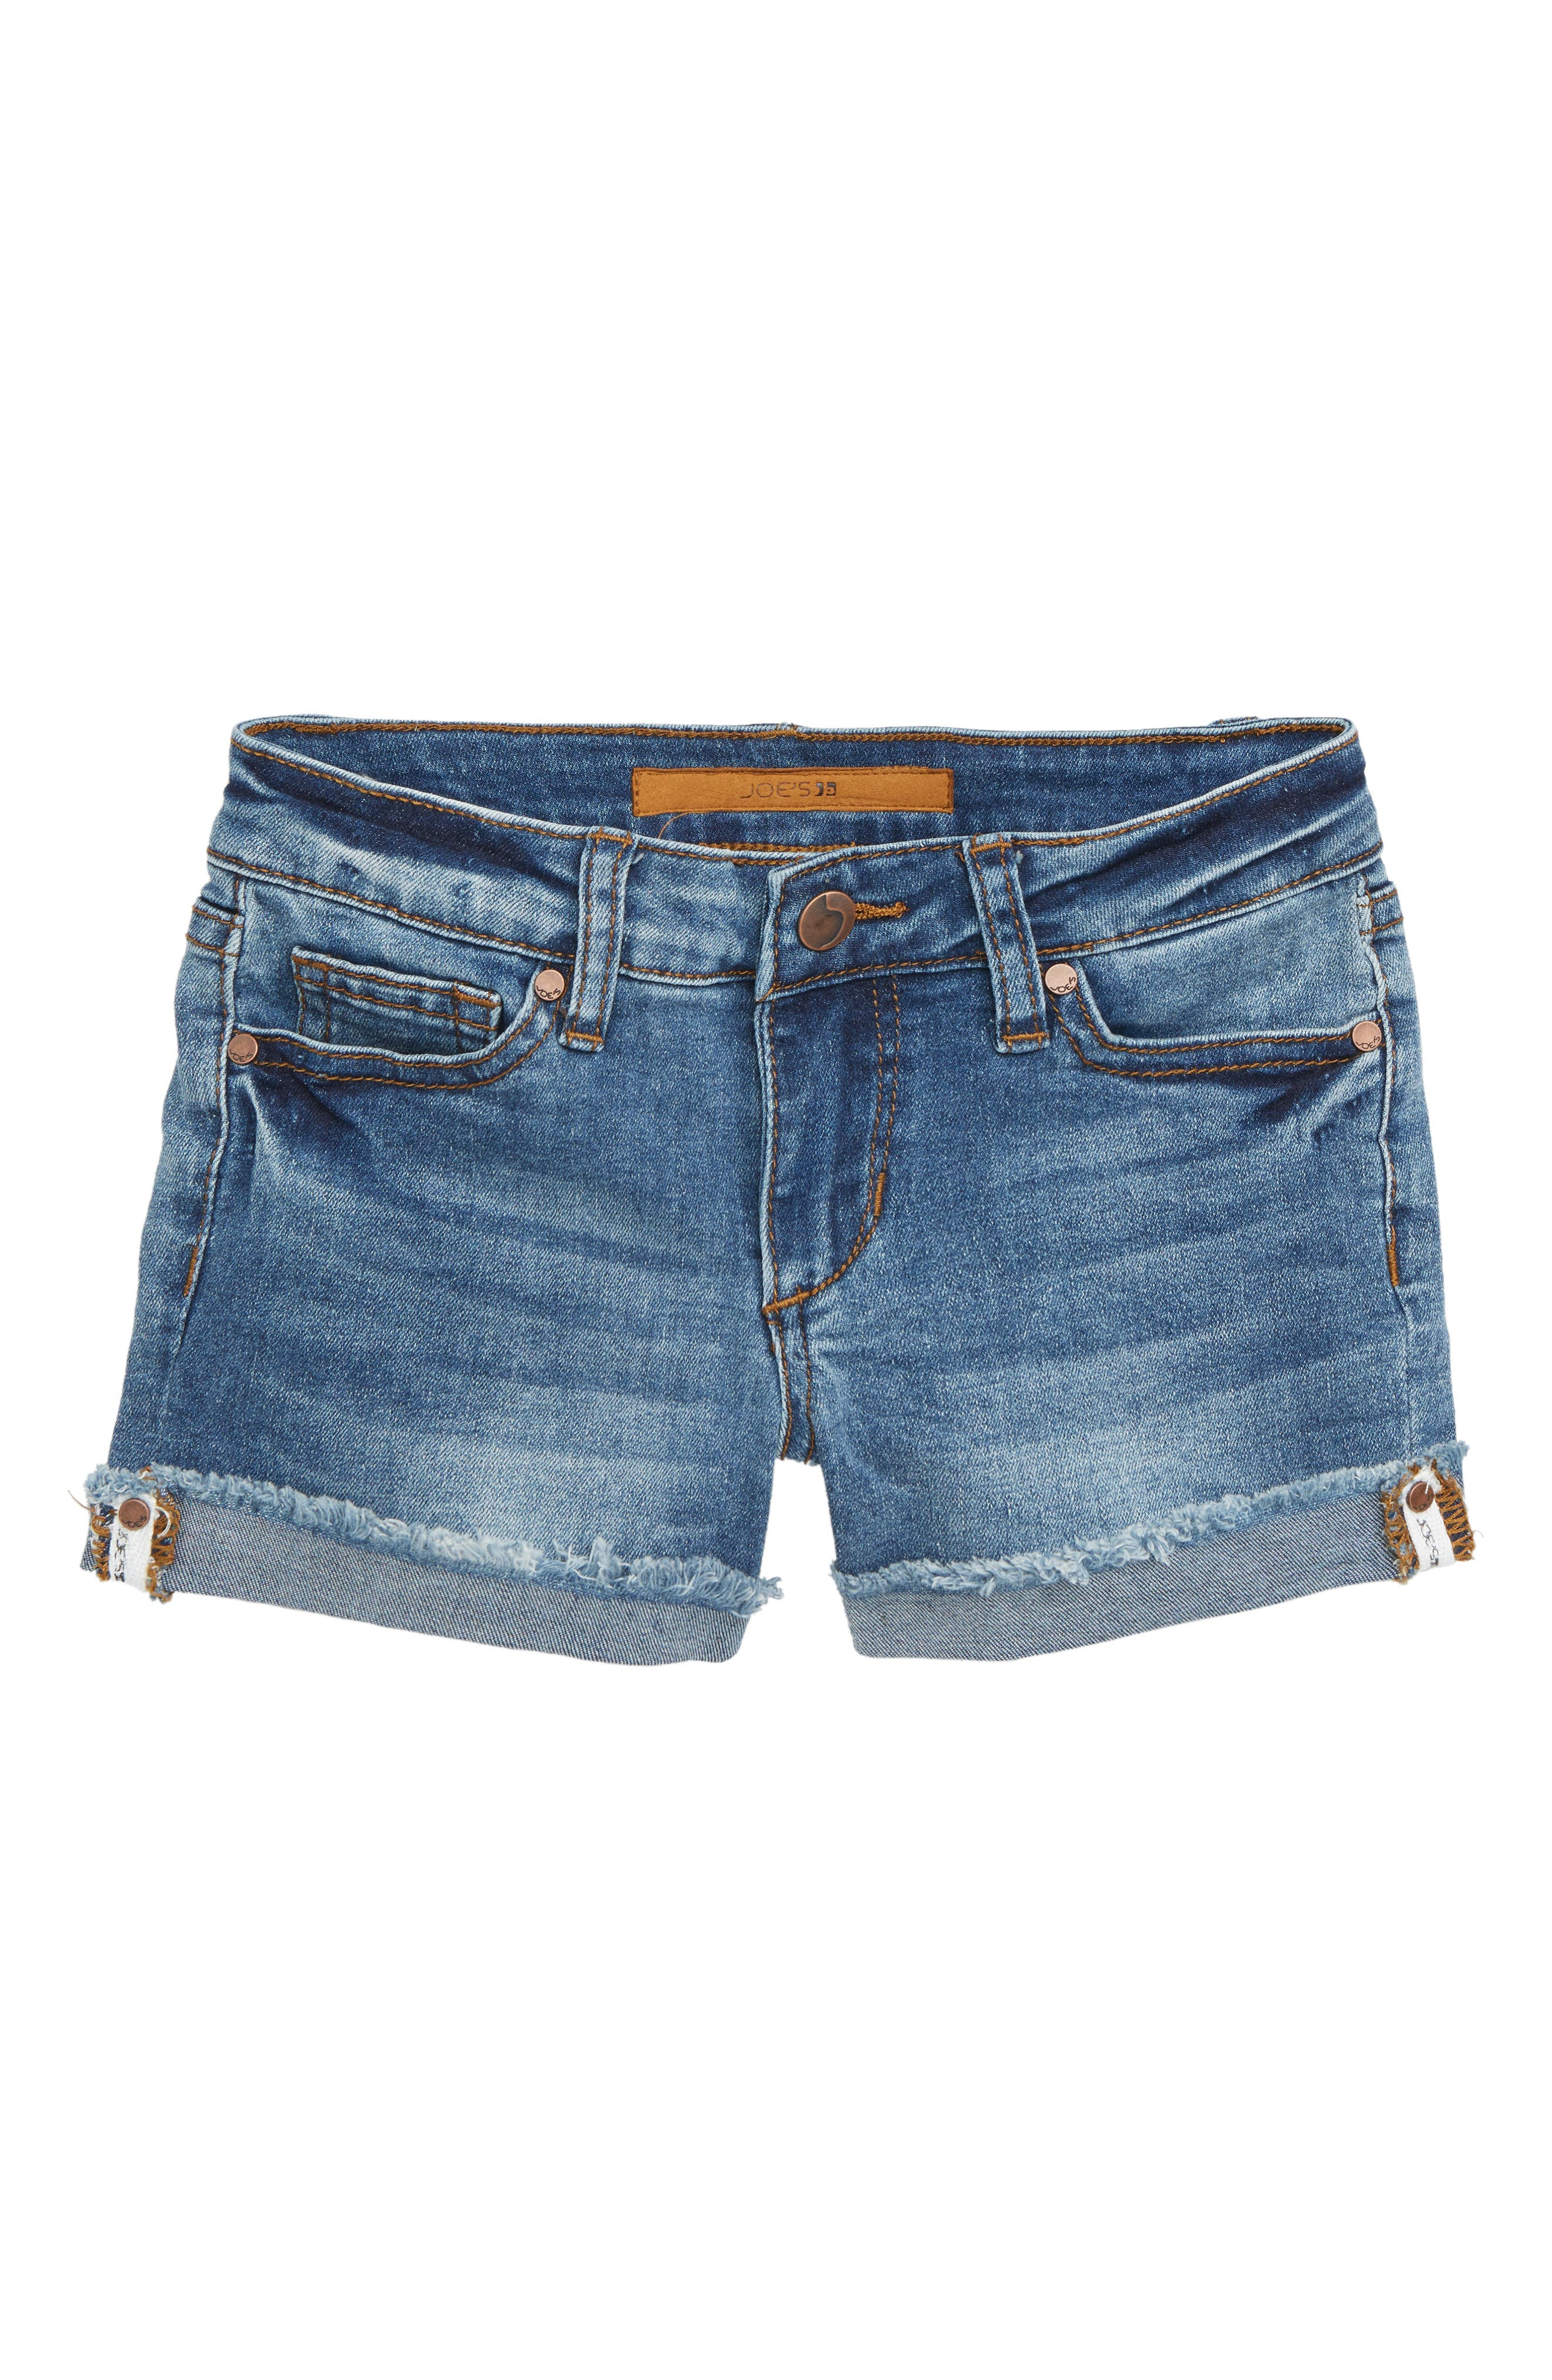 Joes Jean Boys Stretch Short